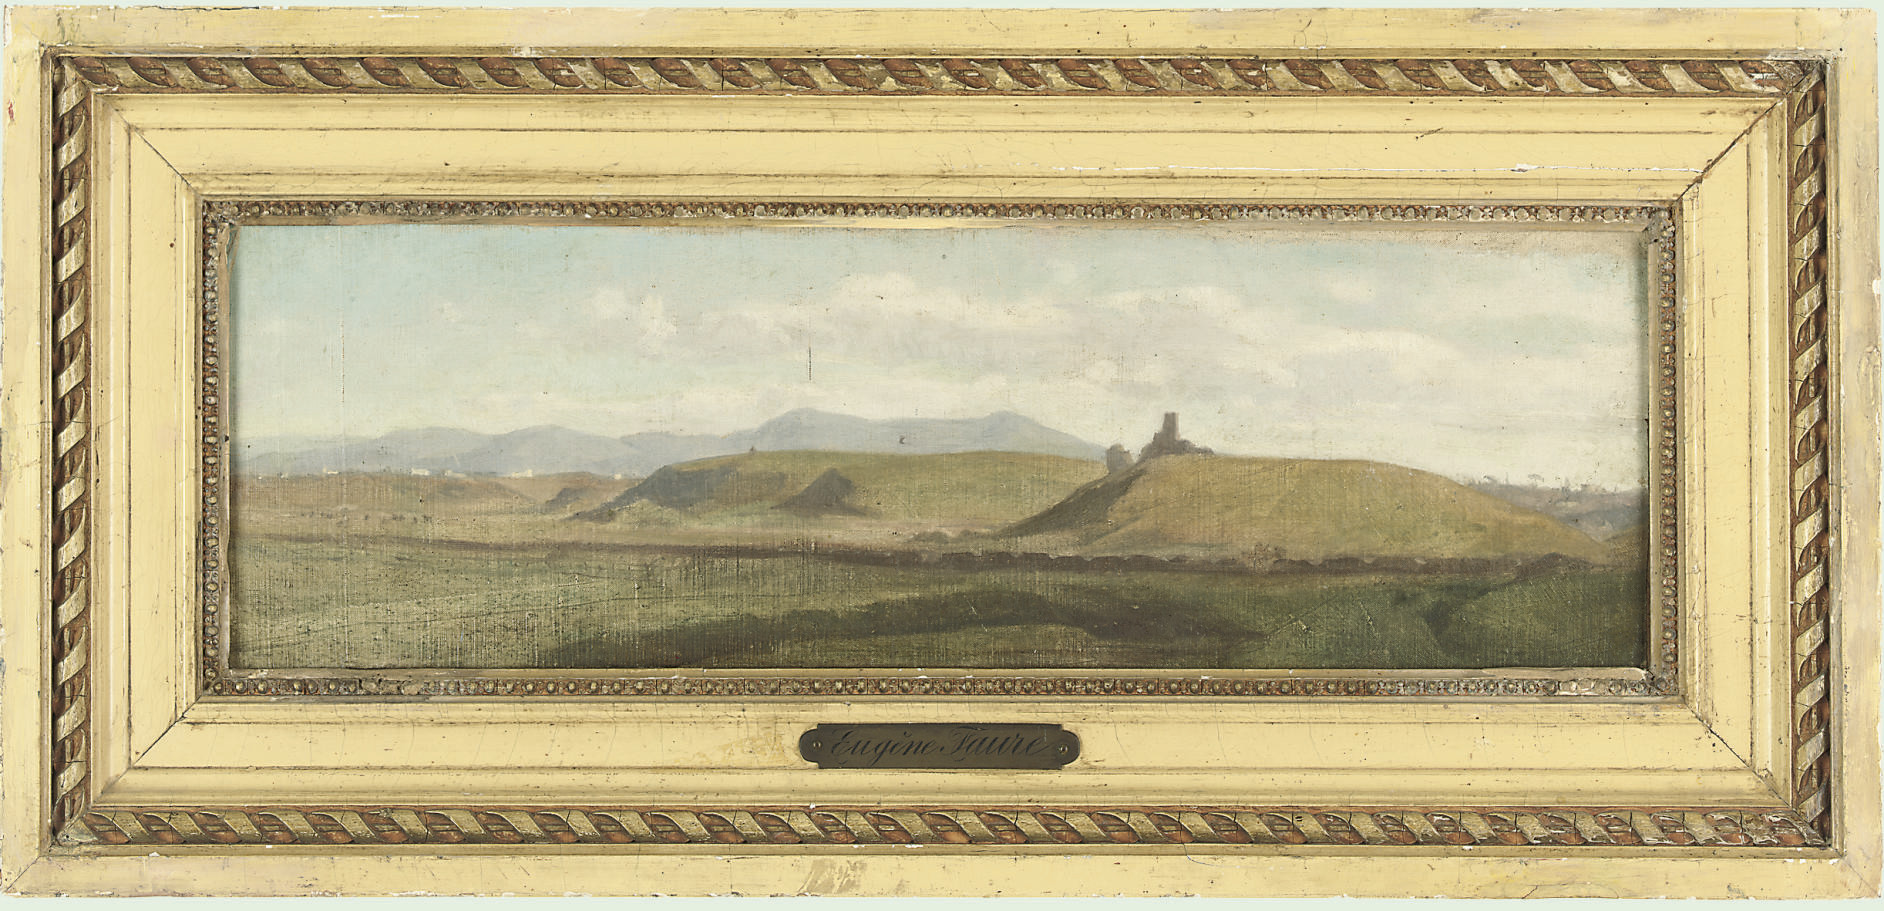 Attributed to Eugène Faure (Fr